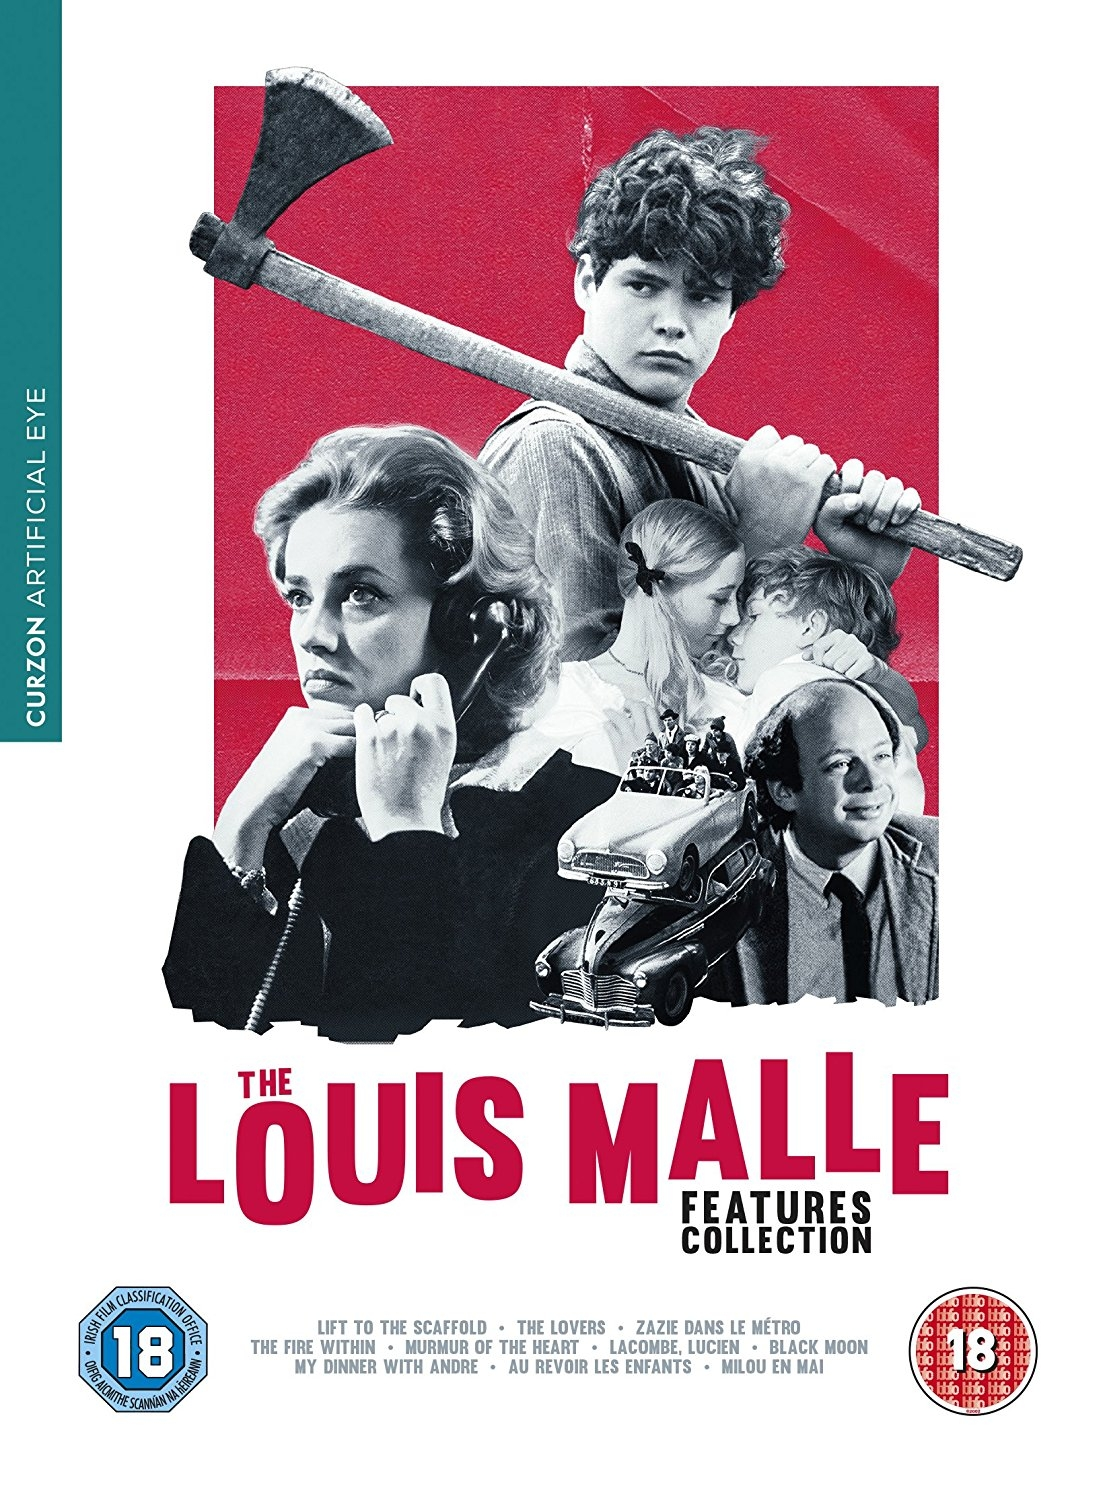 Buy The Louis Malle Features Collection